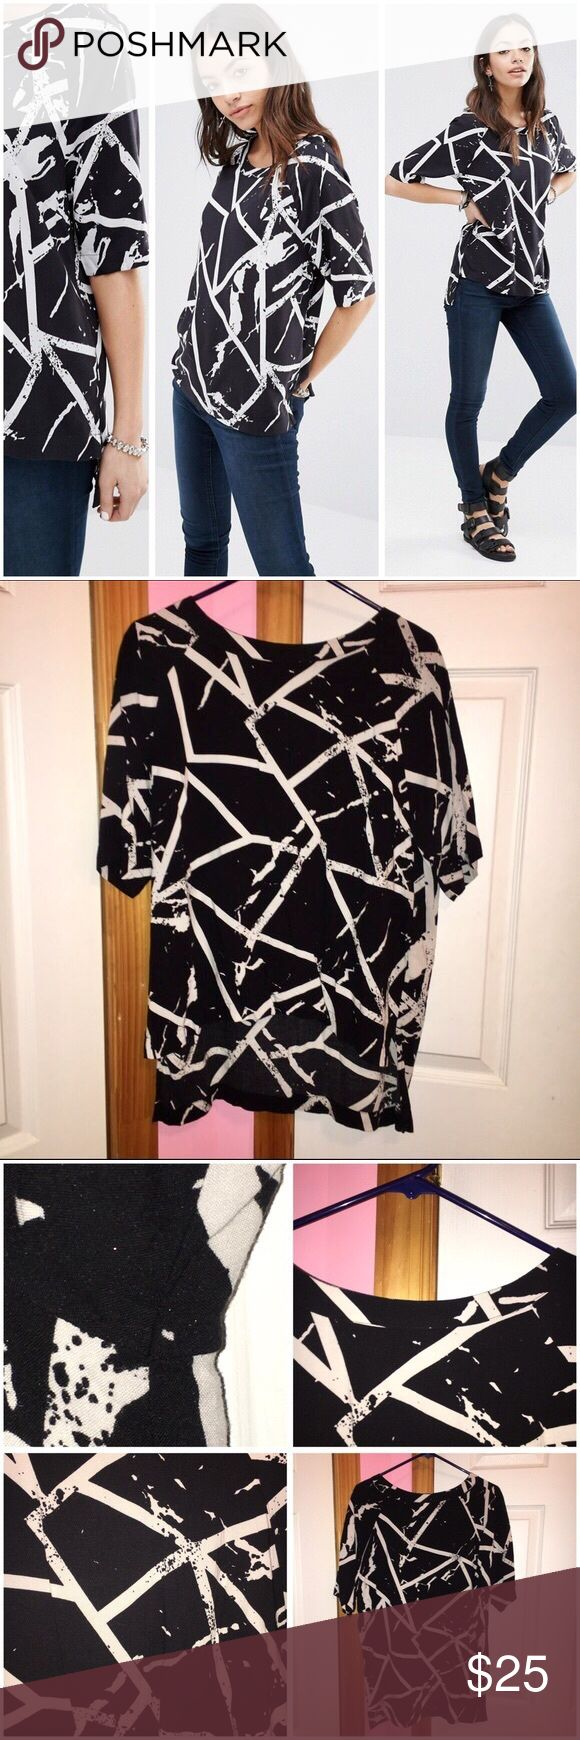 ASOS Noisy May Sandra Top Brand is Noisy May from ASOS. Worn three times. Has slight sign of wear. Does have a mark as seen in the one photo. All over printed design. Crew neckline. 100% viscose. Runs true to size. Stock photos from ASOS. ❌NO TRADES❌ ASOS Tops